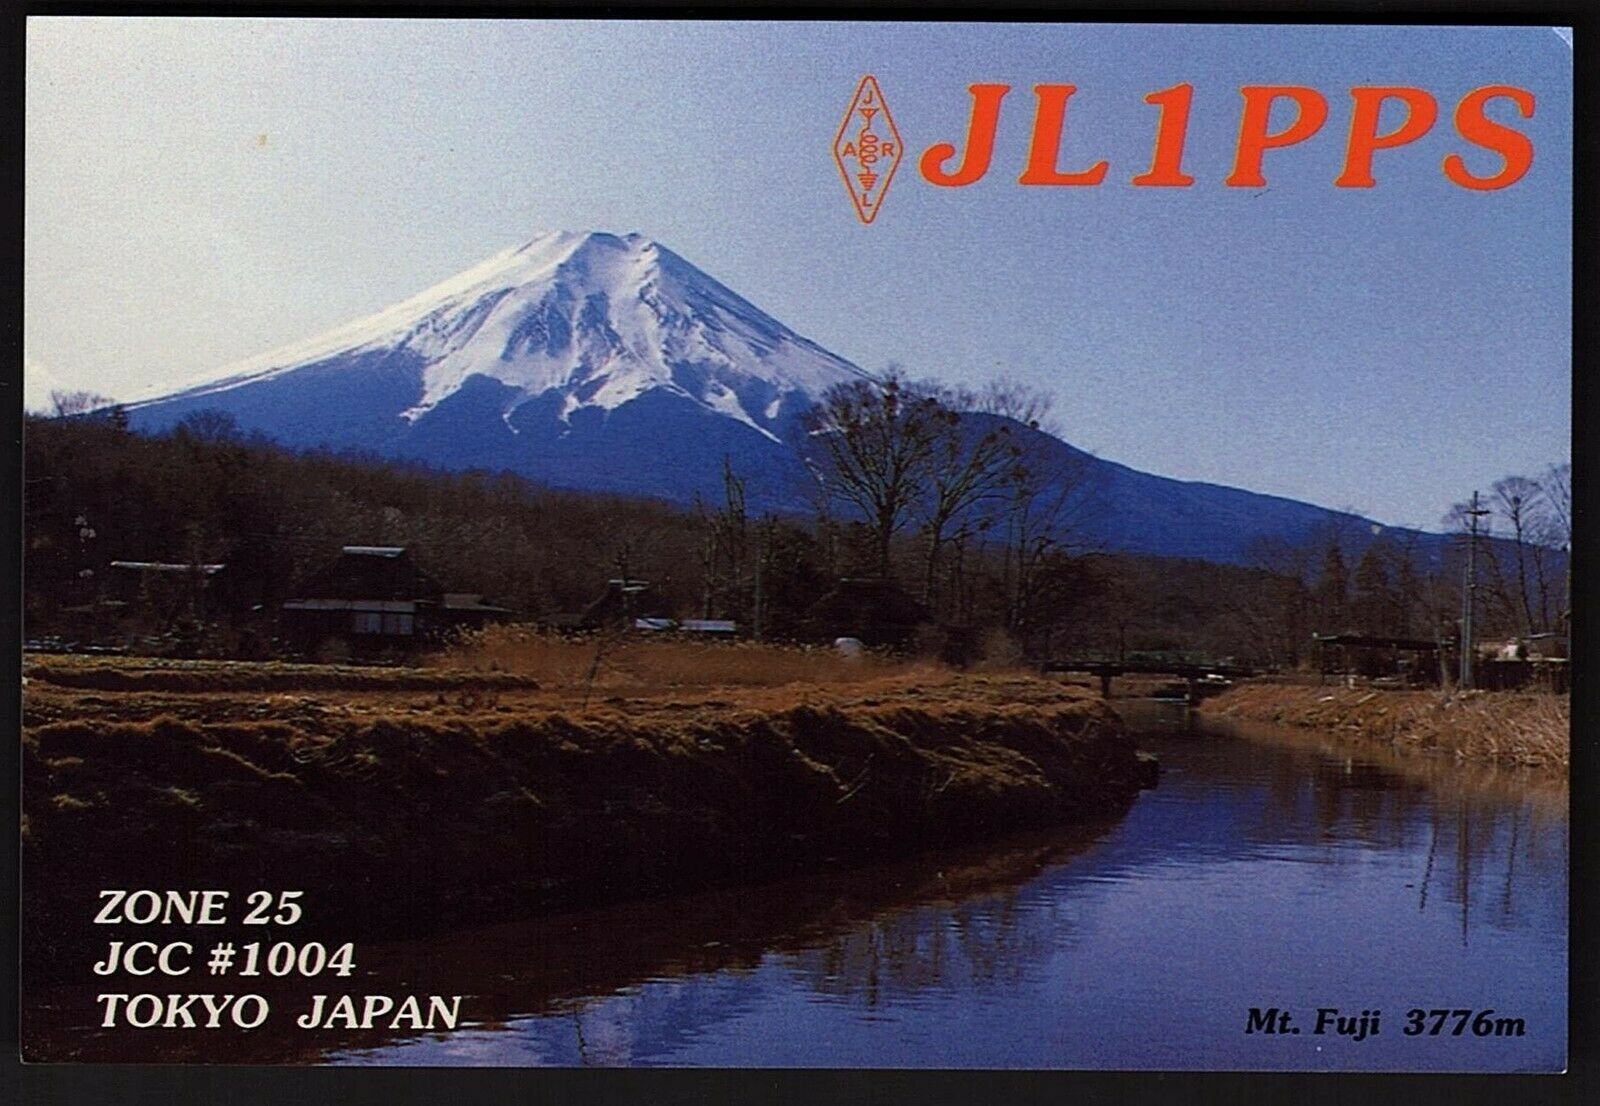 QSL QSO RADIO CARD JL1PPS,Photo of Mt. Fuji,Takeshi'Take' Osaka, Japan (Q2589)